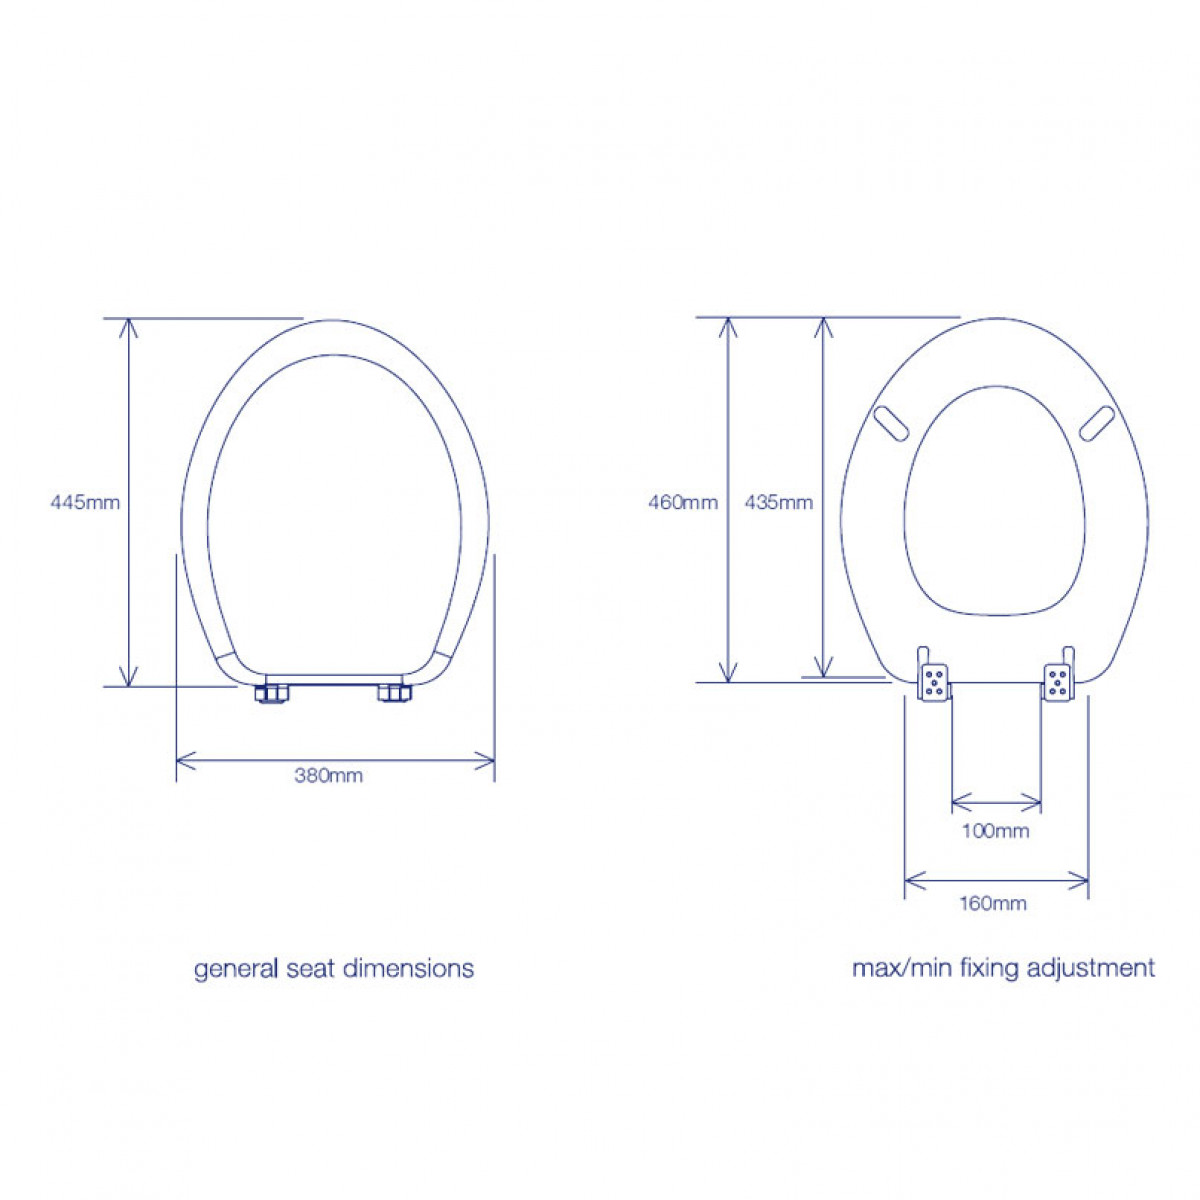 uk toilet seat sizes. Charming Uk Toilet Seat Sizes Ideas  Best inspiration home design